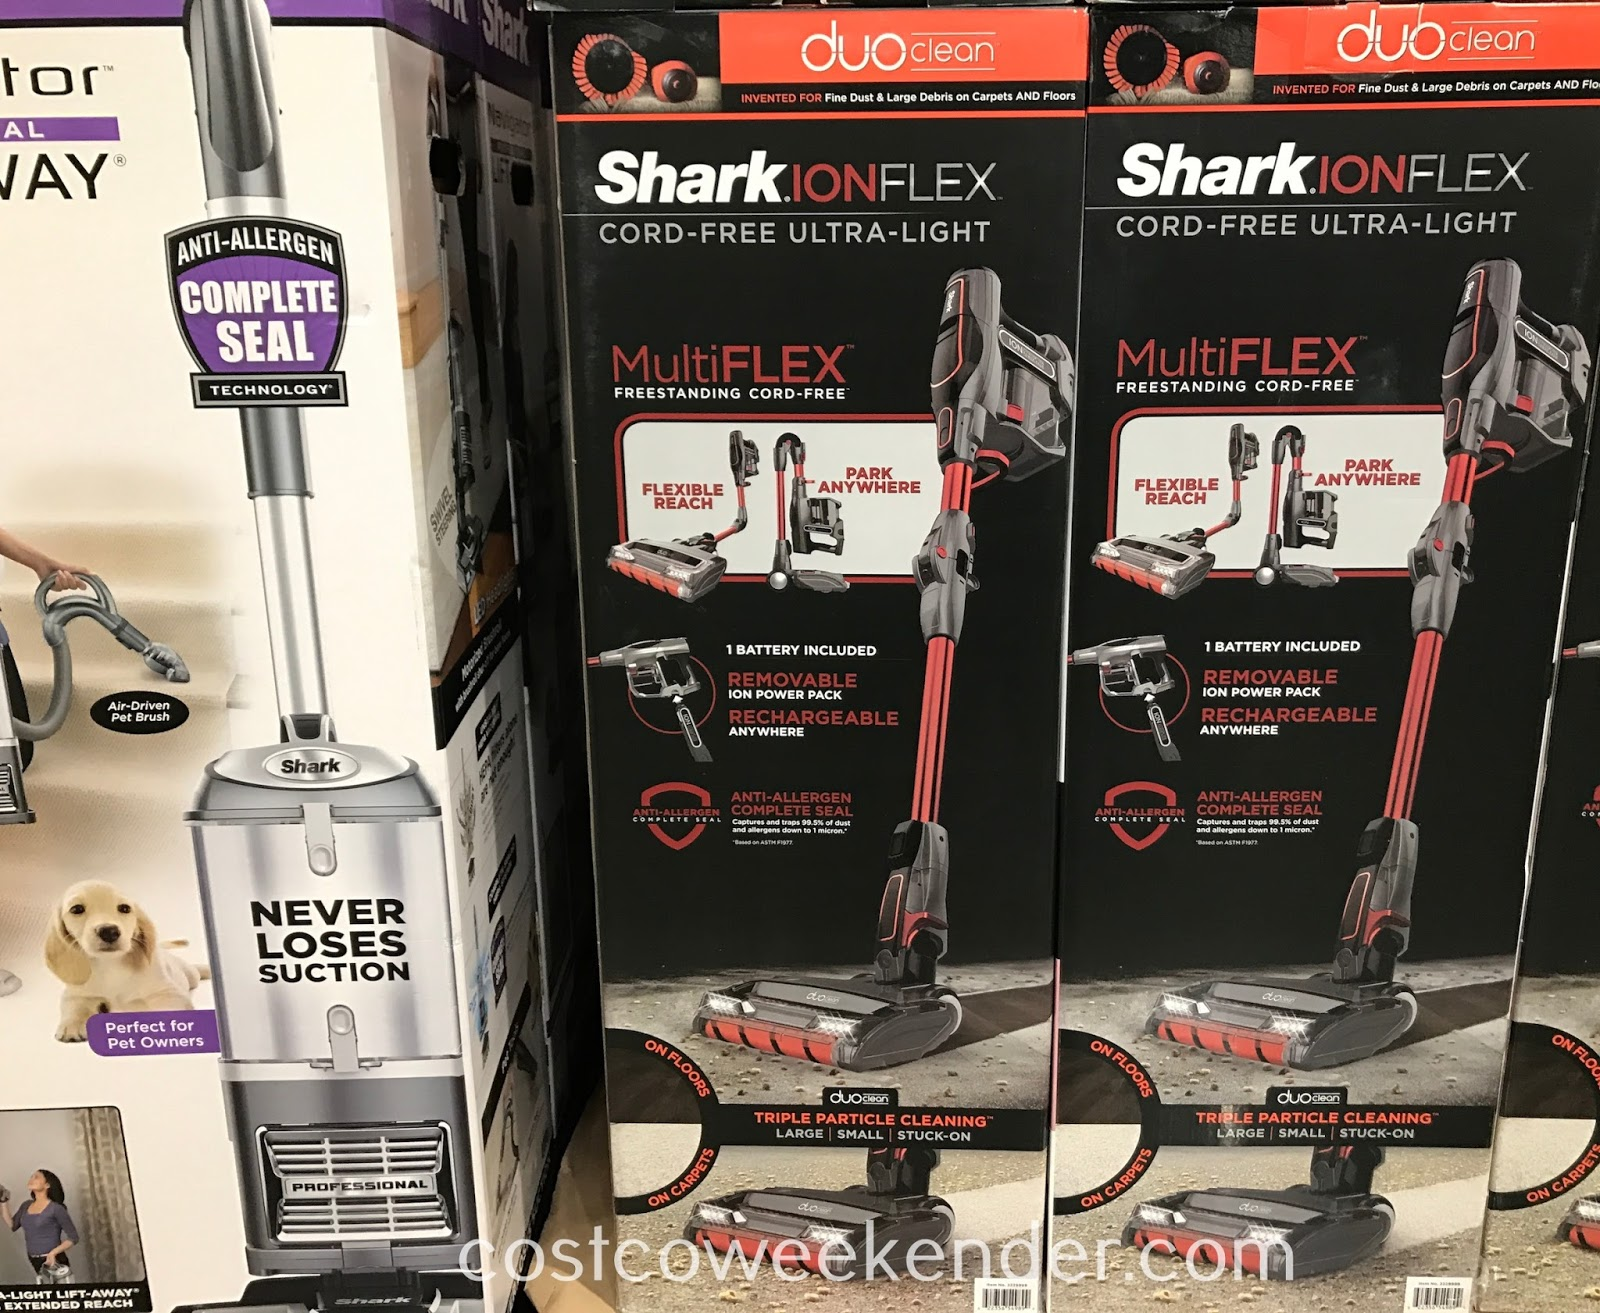 Easily clean your home with the Shark Ion Flex Cord-free Vacuum